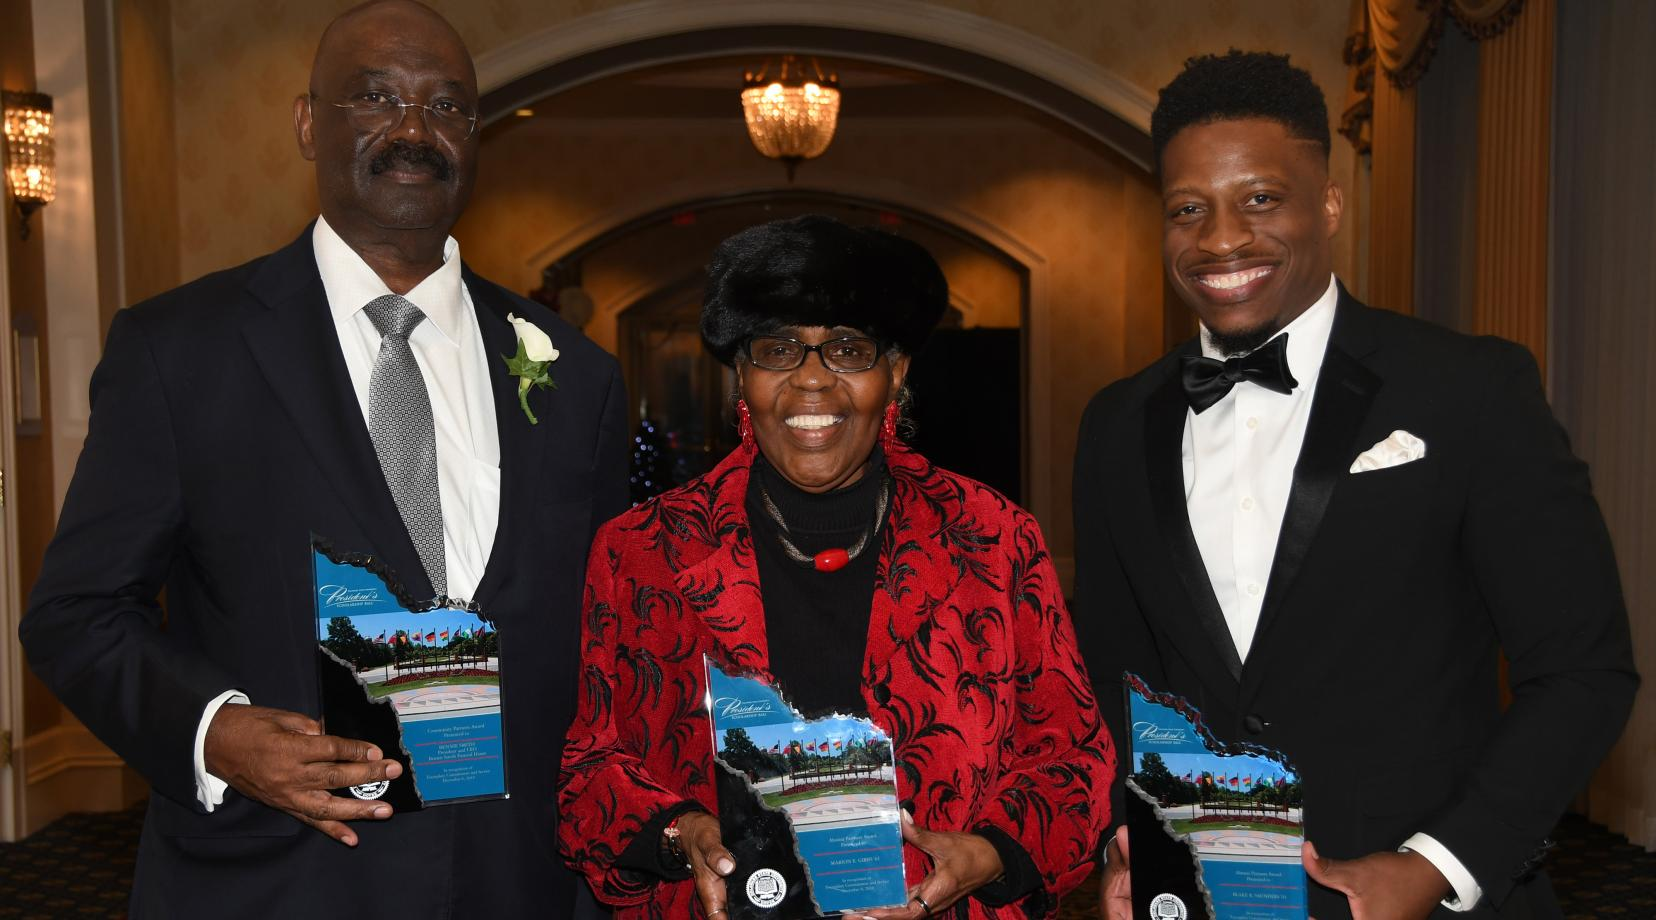 The 2018 President's Scholarship Ball's University Partners Award recipients: (l-r) Bennie Smith, Marion E. Gibbs and Blake R. Saunders.